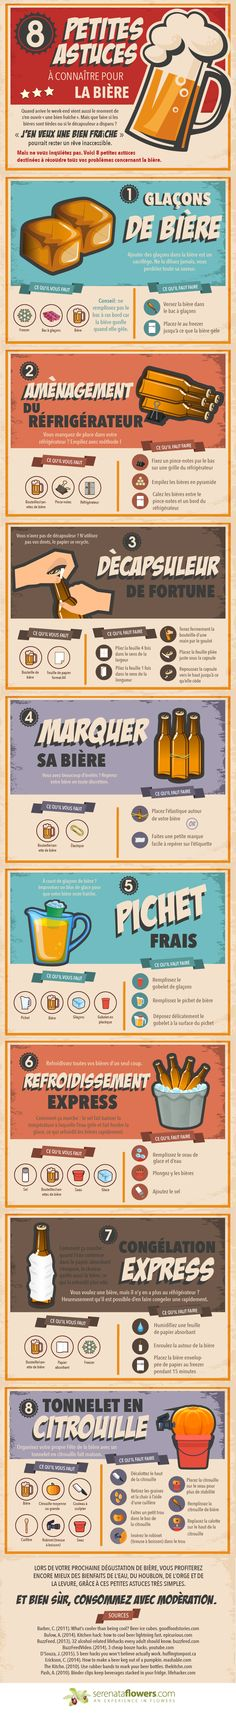 Got beer? Got no fridge or beer opener? No worries, with these beer hacks you'll find no excuse not to get the beers out. More Beer, All Beer, Wine And Beer, Best Beer, Beer Brewing, Home Brewing, Cocktails Vin, Beer Infographic, Beer Quotes